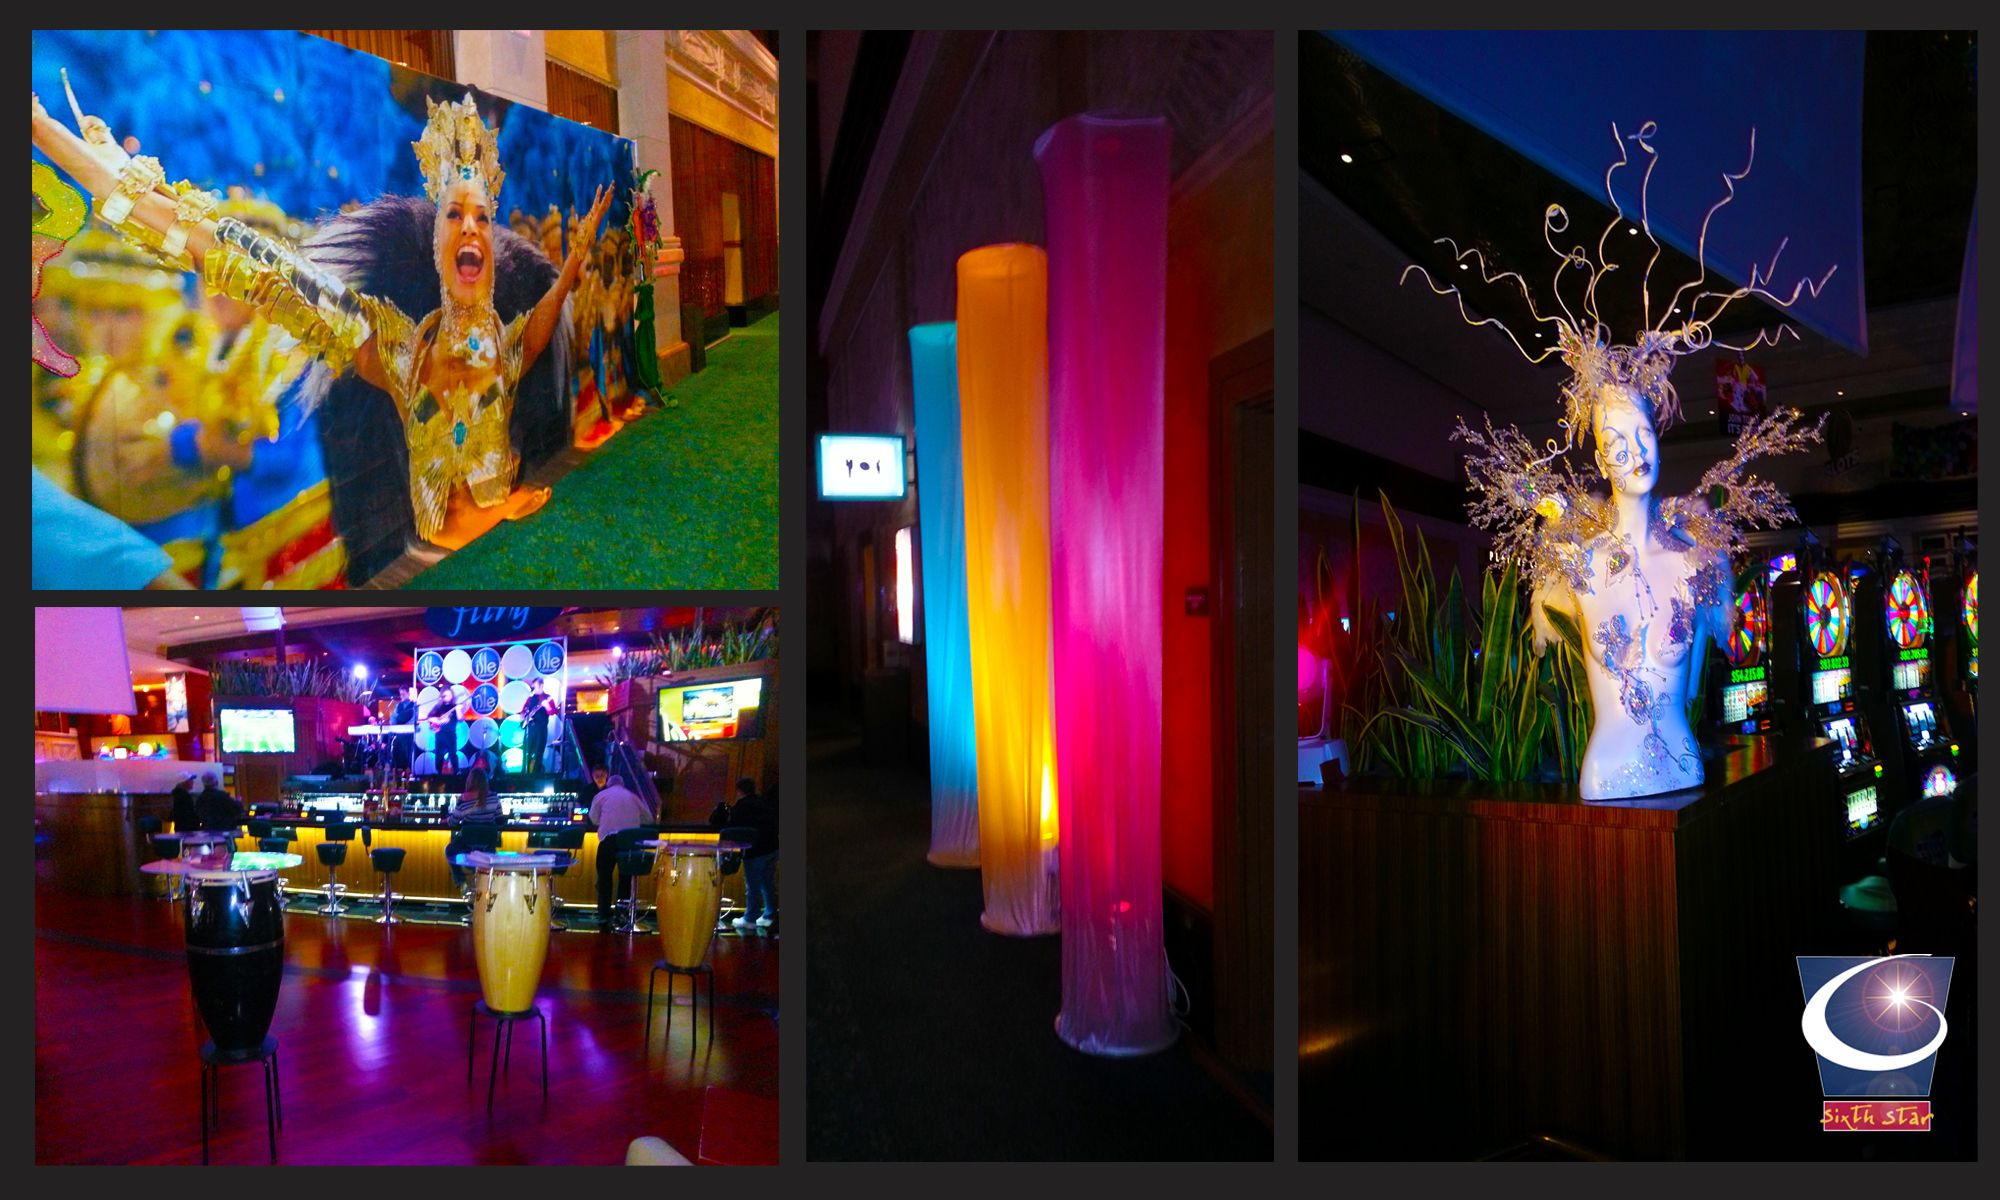 brazillian carnaval theme event decor designed and built in house by